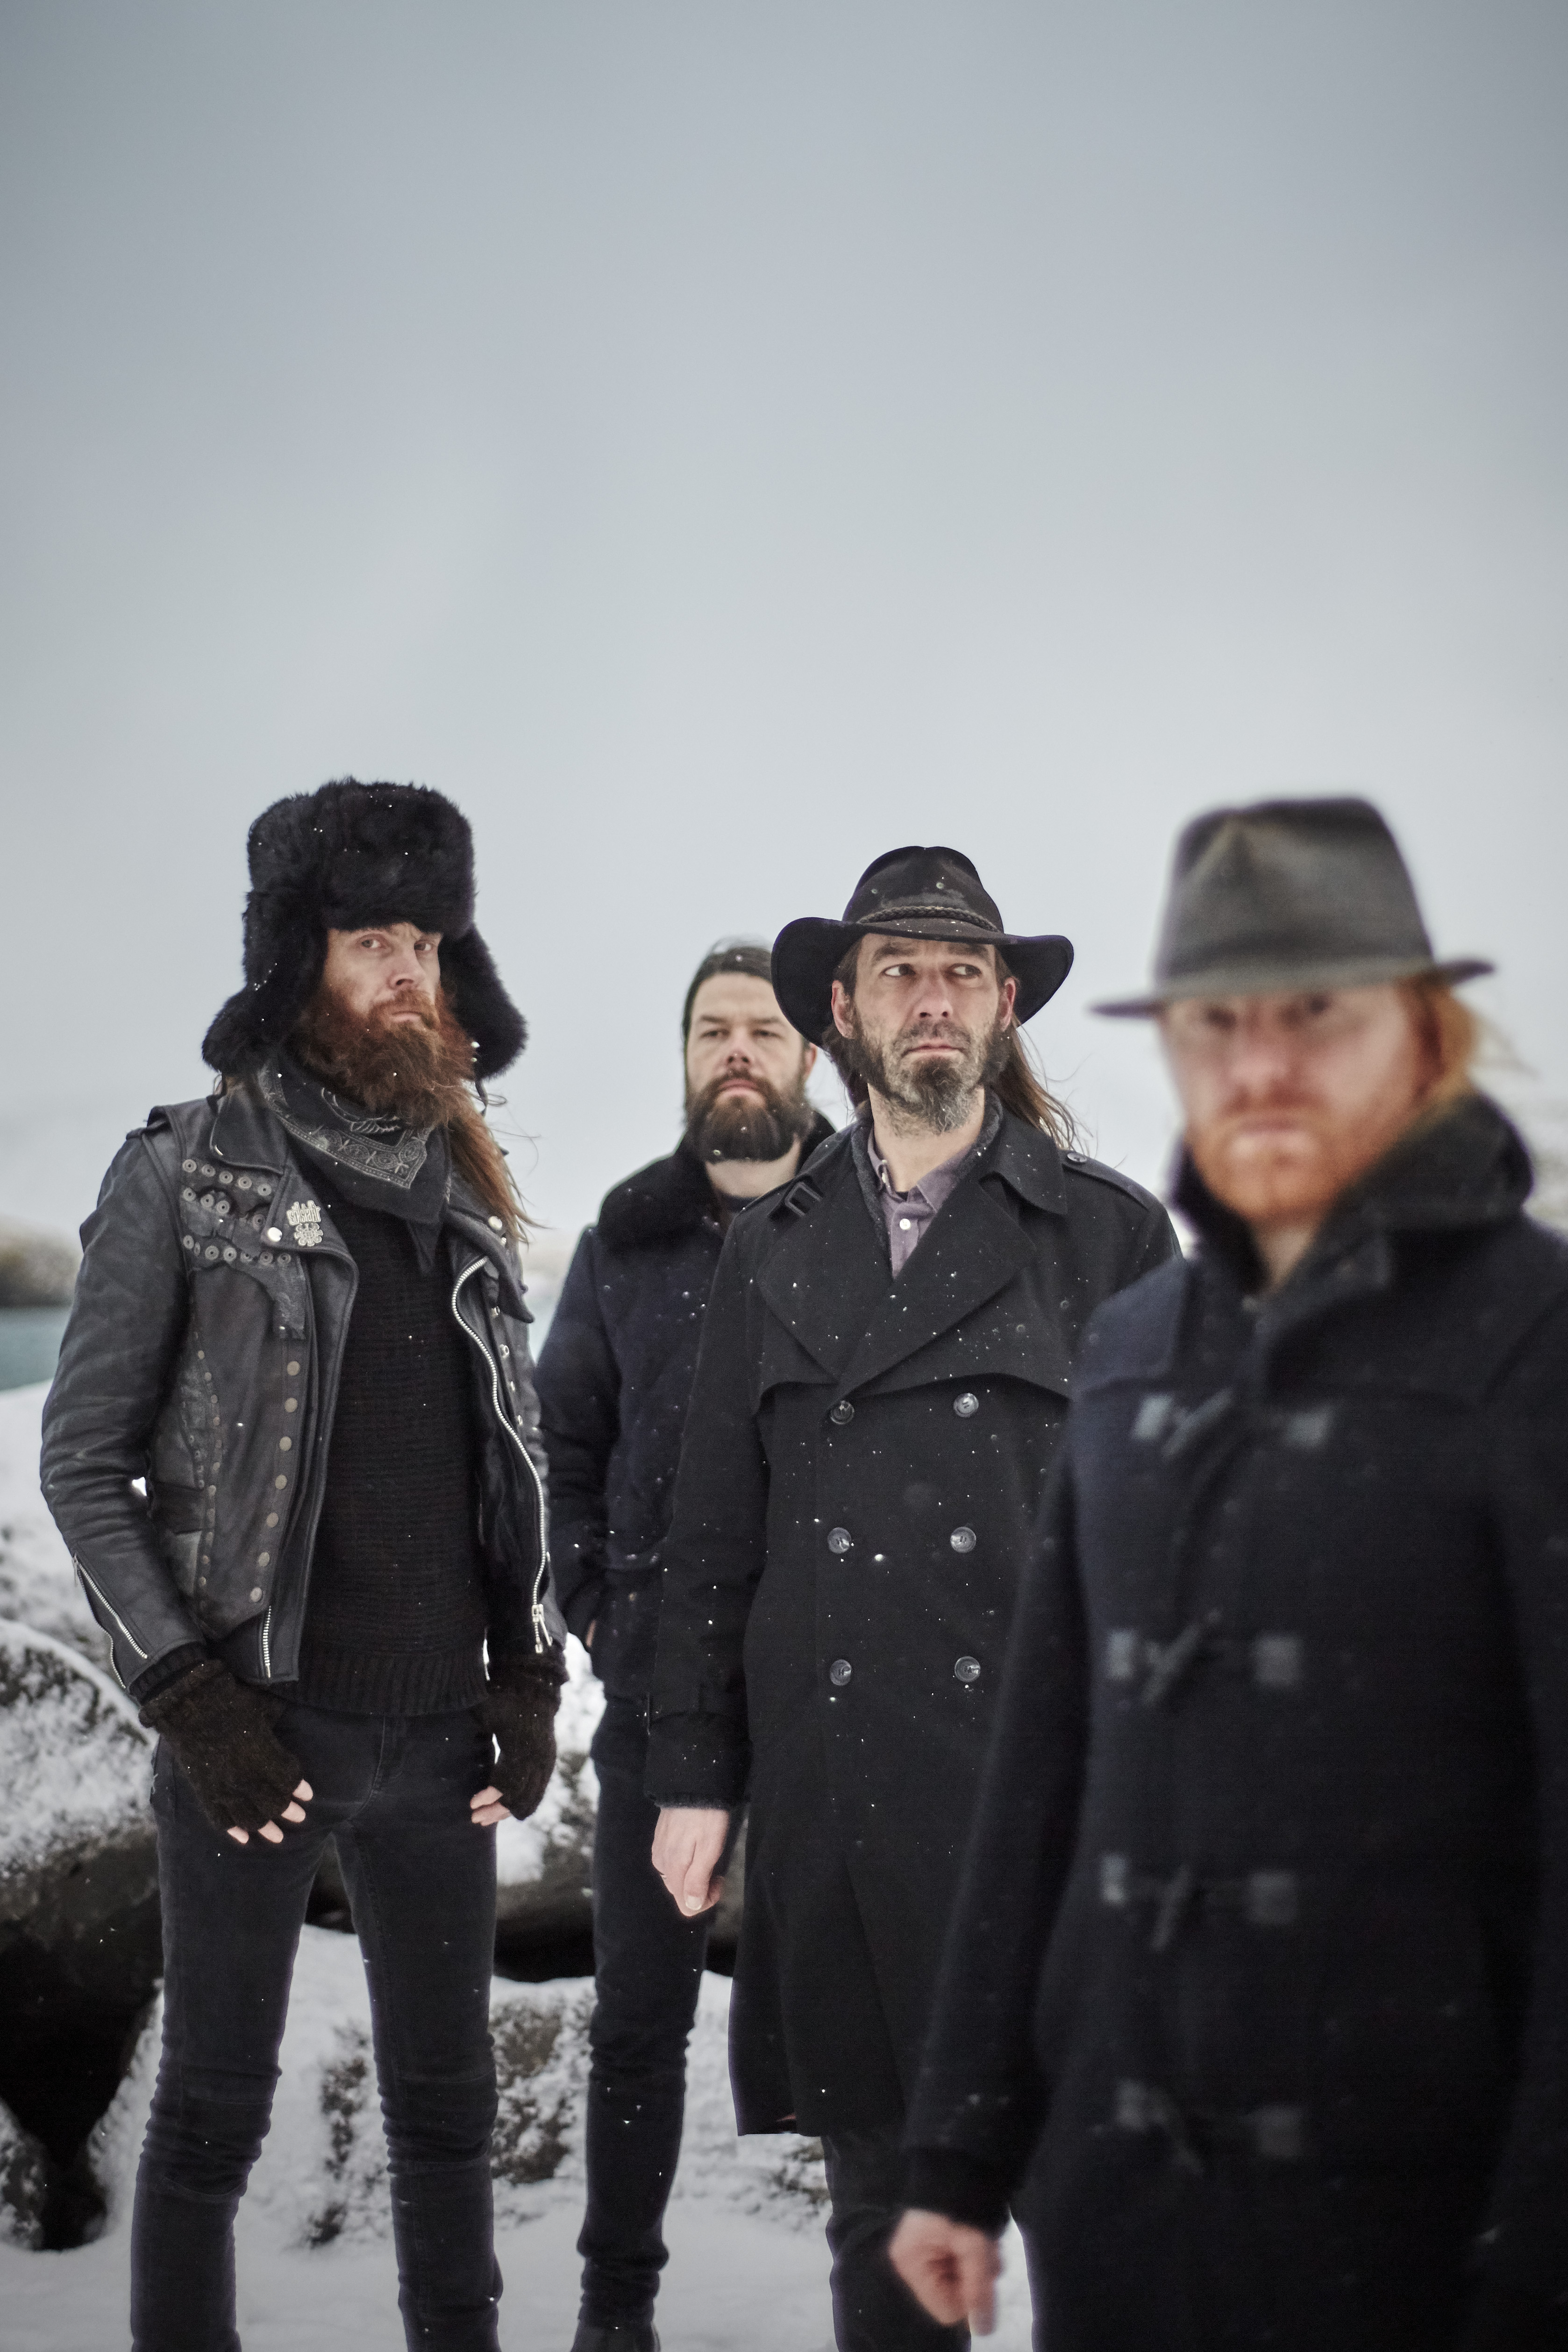 SÓLSTAFIR (IS)